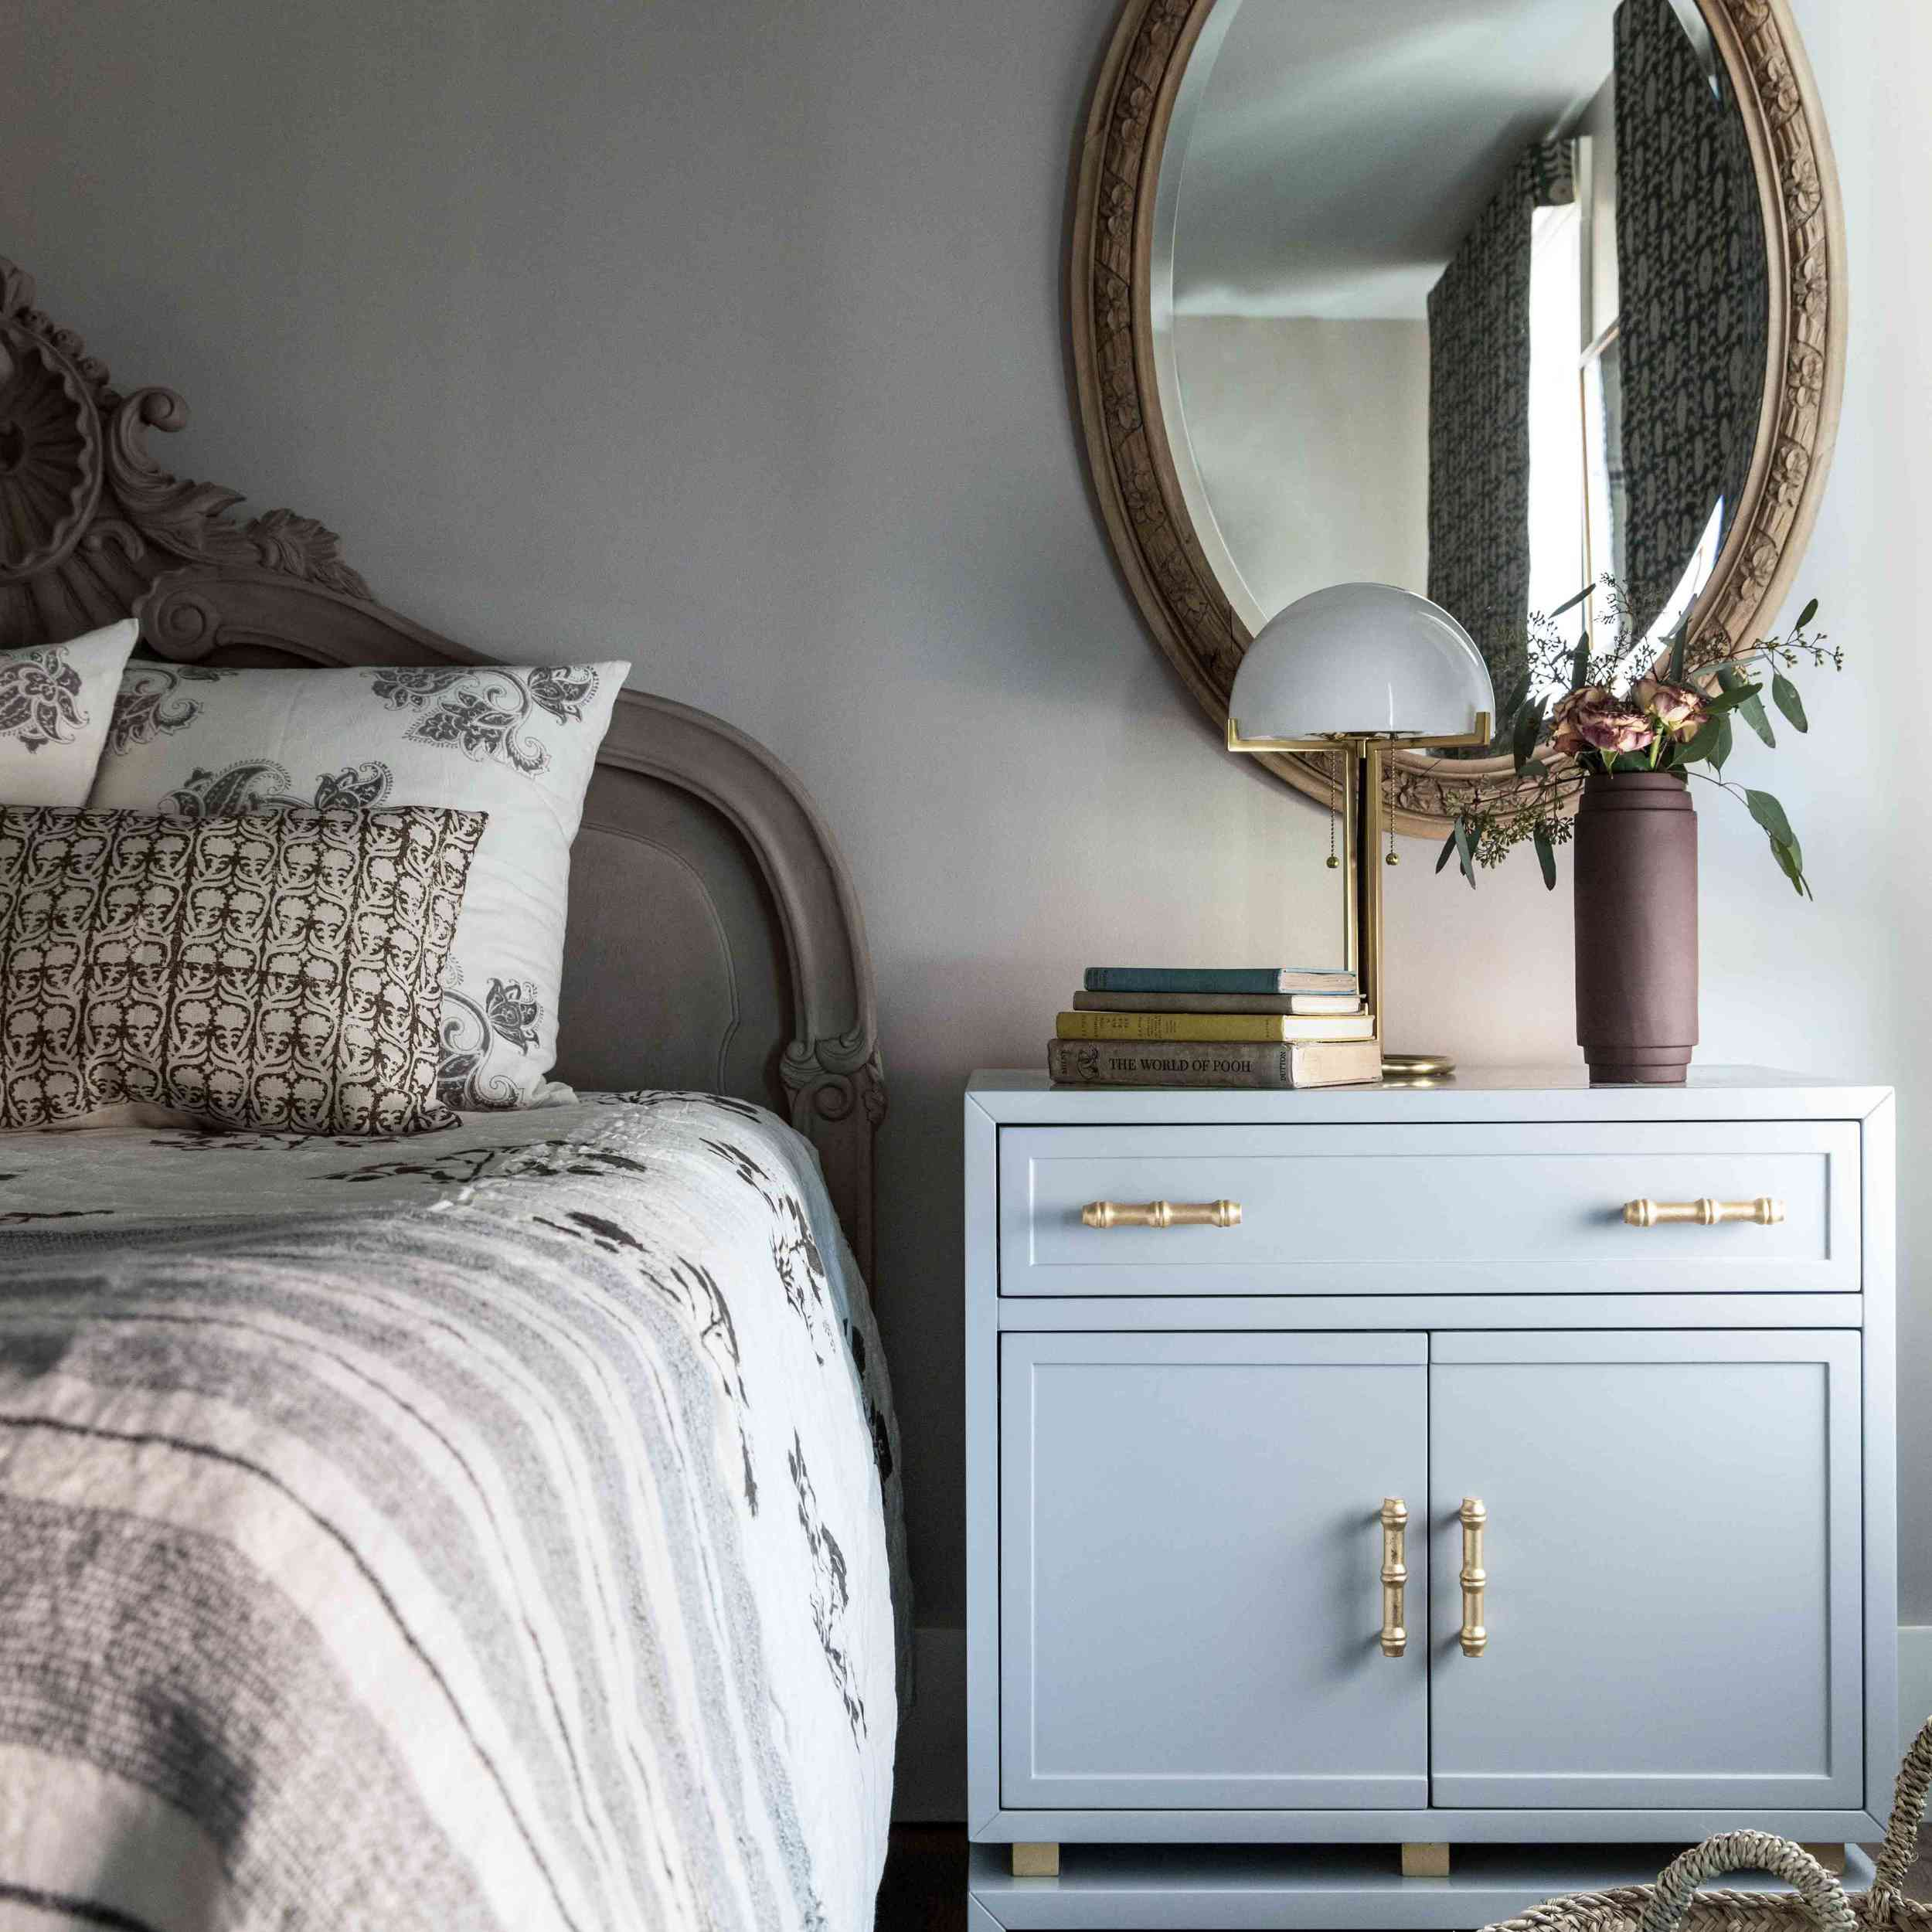 A bedroom with a Victorian headboard and mirror, as well as some more contemporary decor